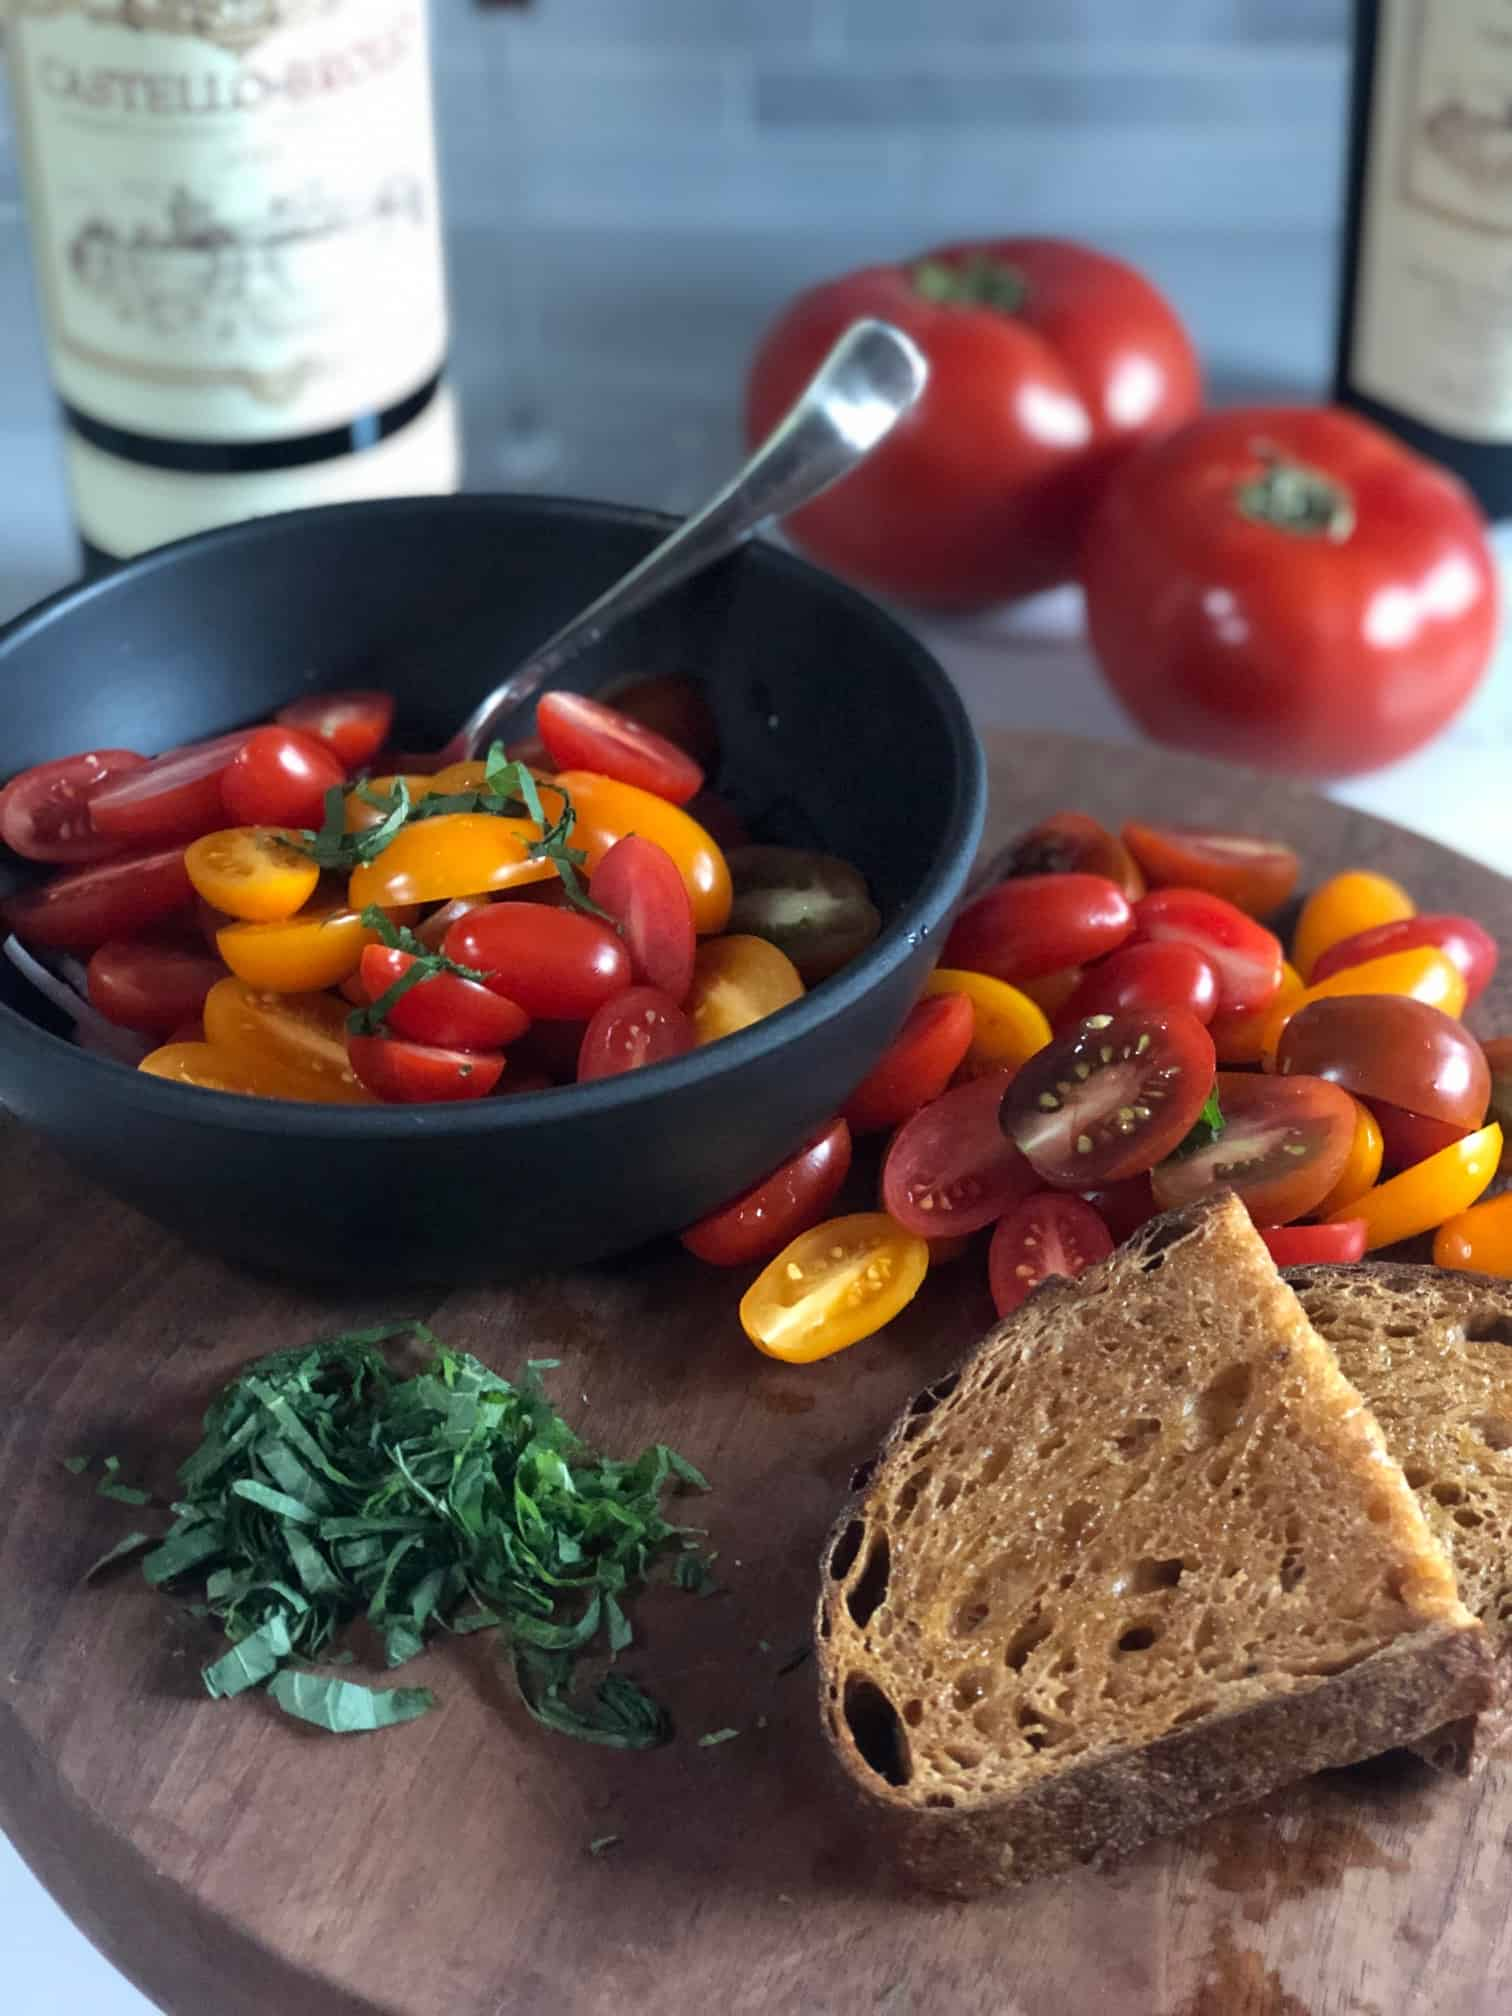 halved cherry tomatoes on a brown cutting board with bread